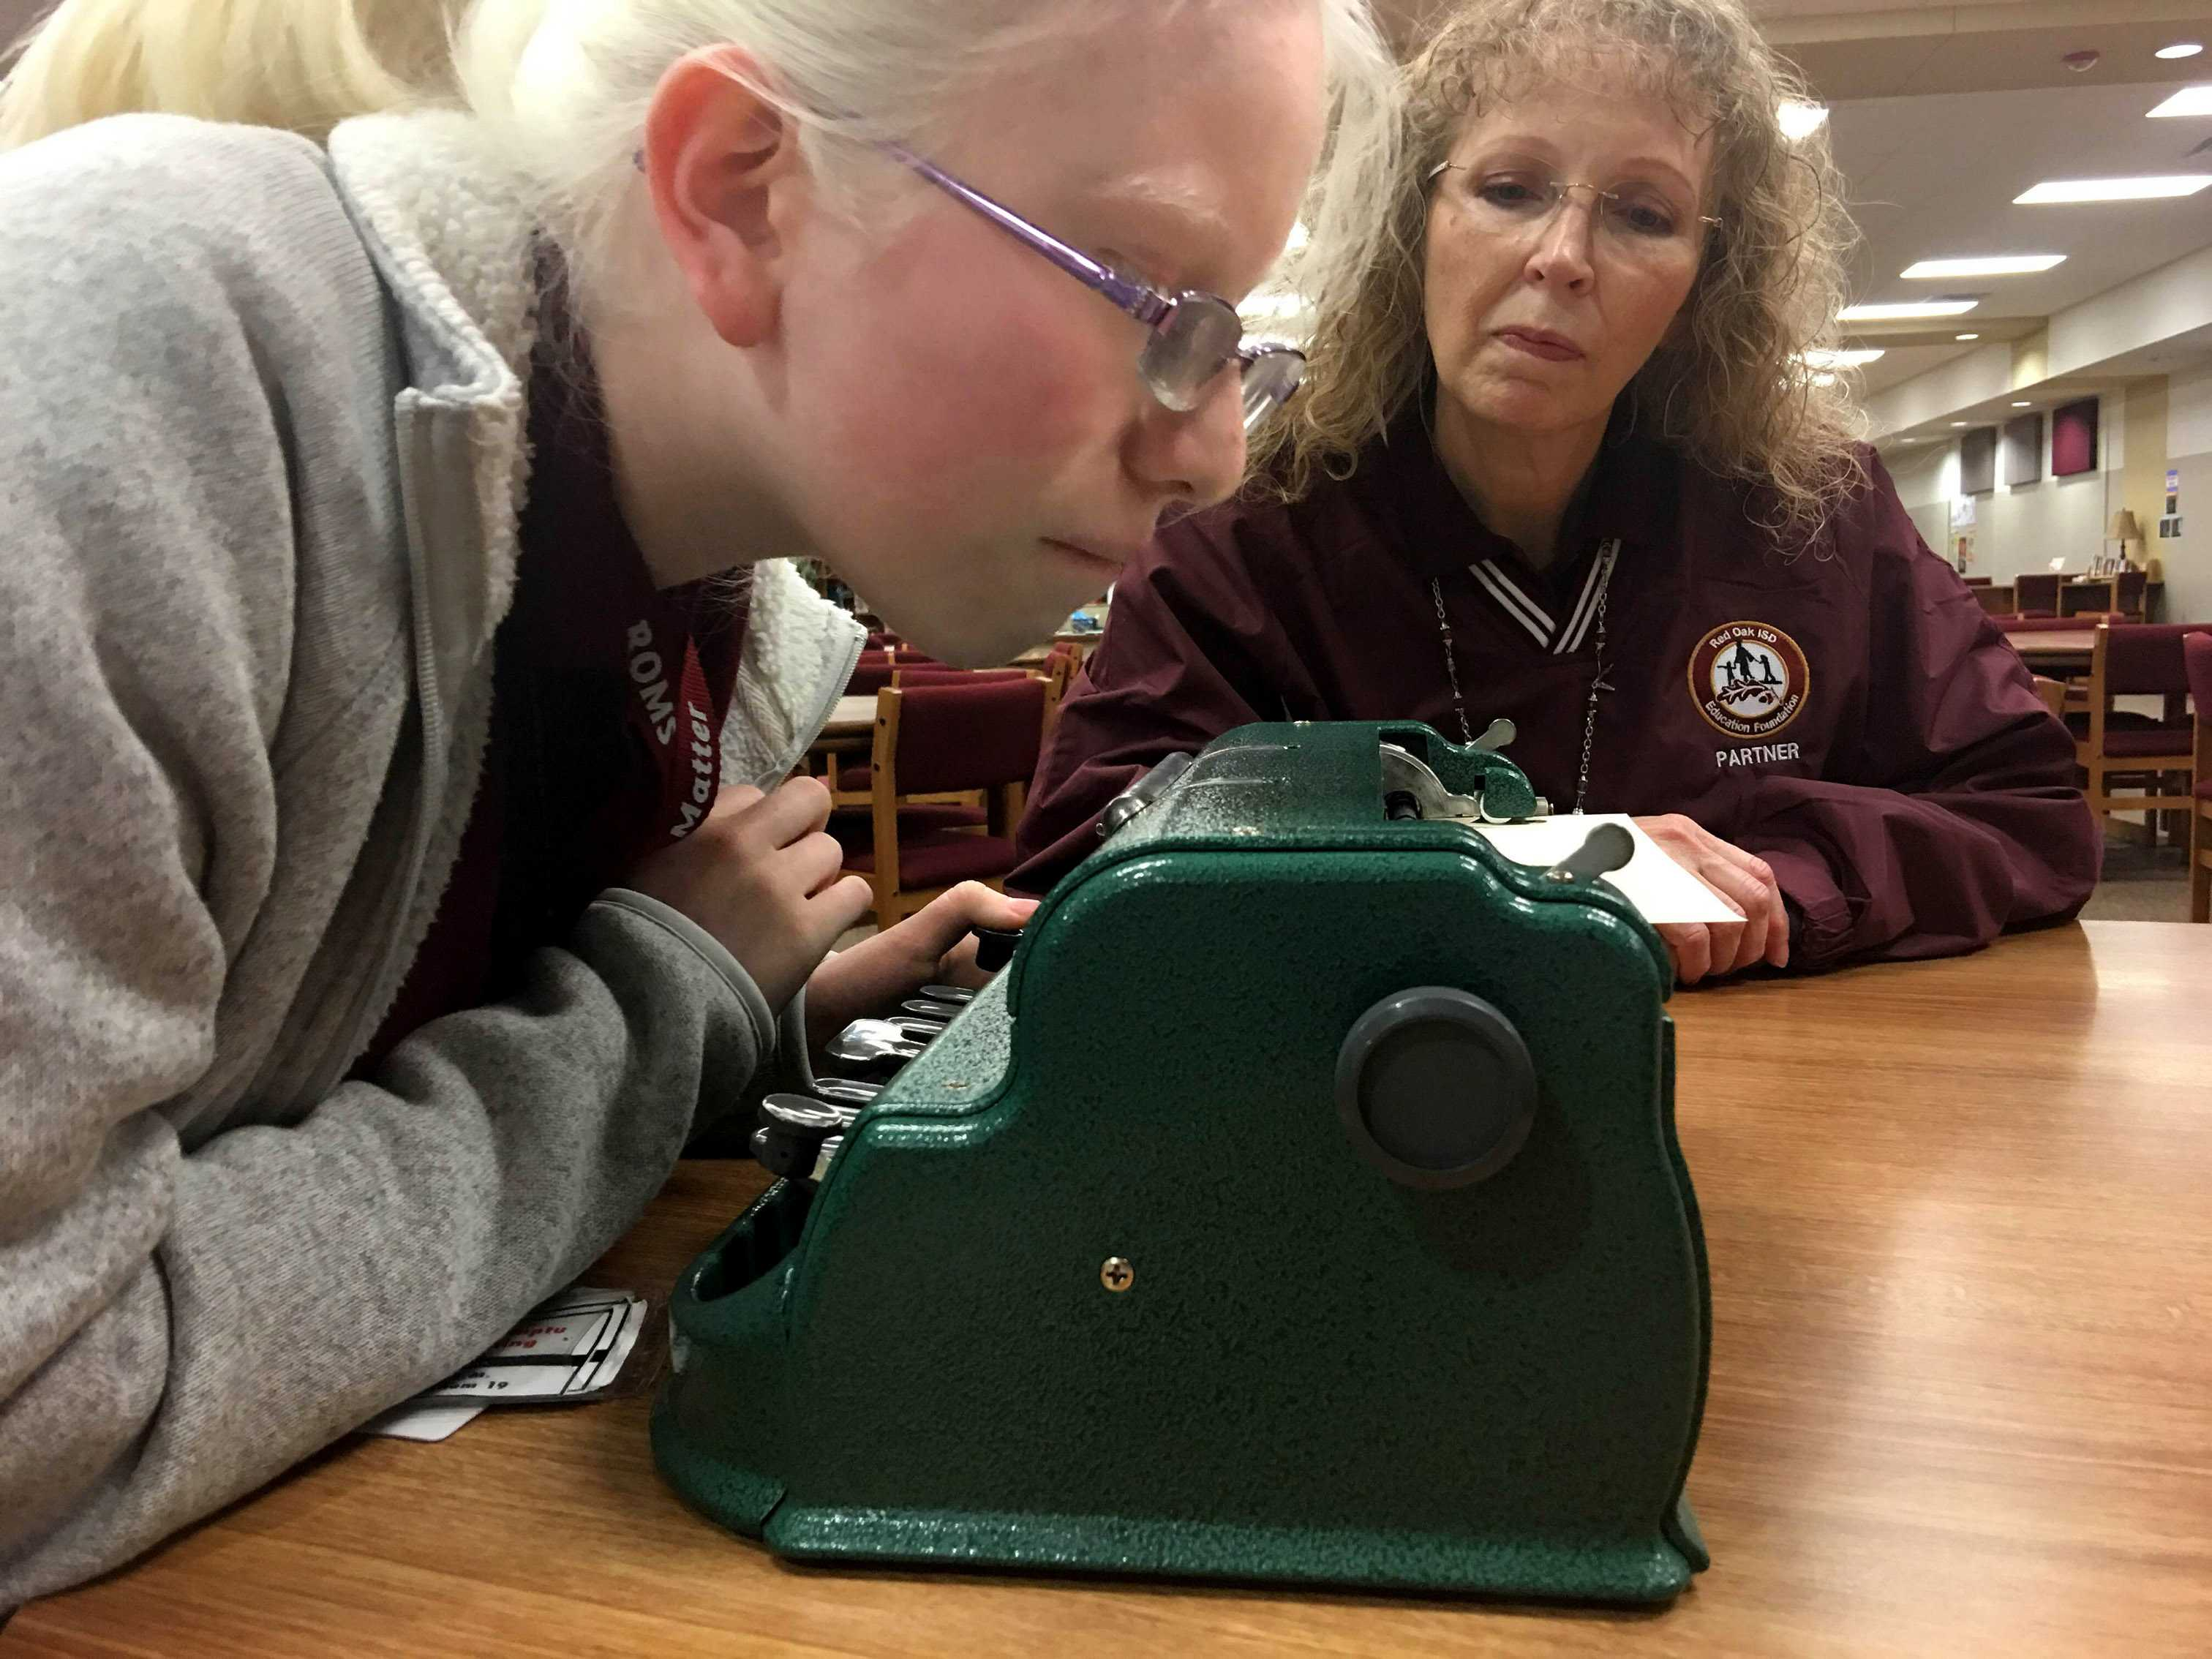 Paulina Diaz, left, practices using a Braille typewriter under the supervision of Terry Layfield, a teacher of the visually impaired, in the Red Oak Middle School Learning Commons on Dec. 16, 2015. Diaz is affected by albinism, which caused her loss of vision. She has been working with Layfield since she was 5 years old, and sends letters written in Braille to another of Layfield's students at Red Oak High School.